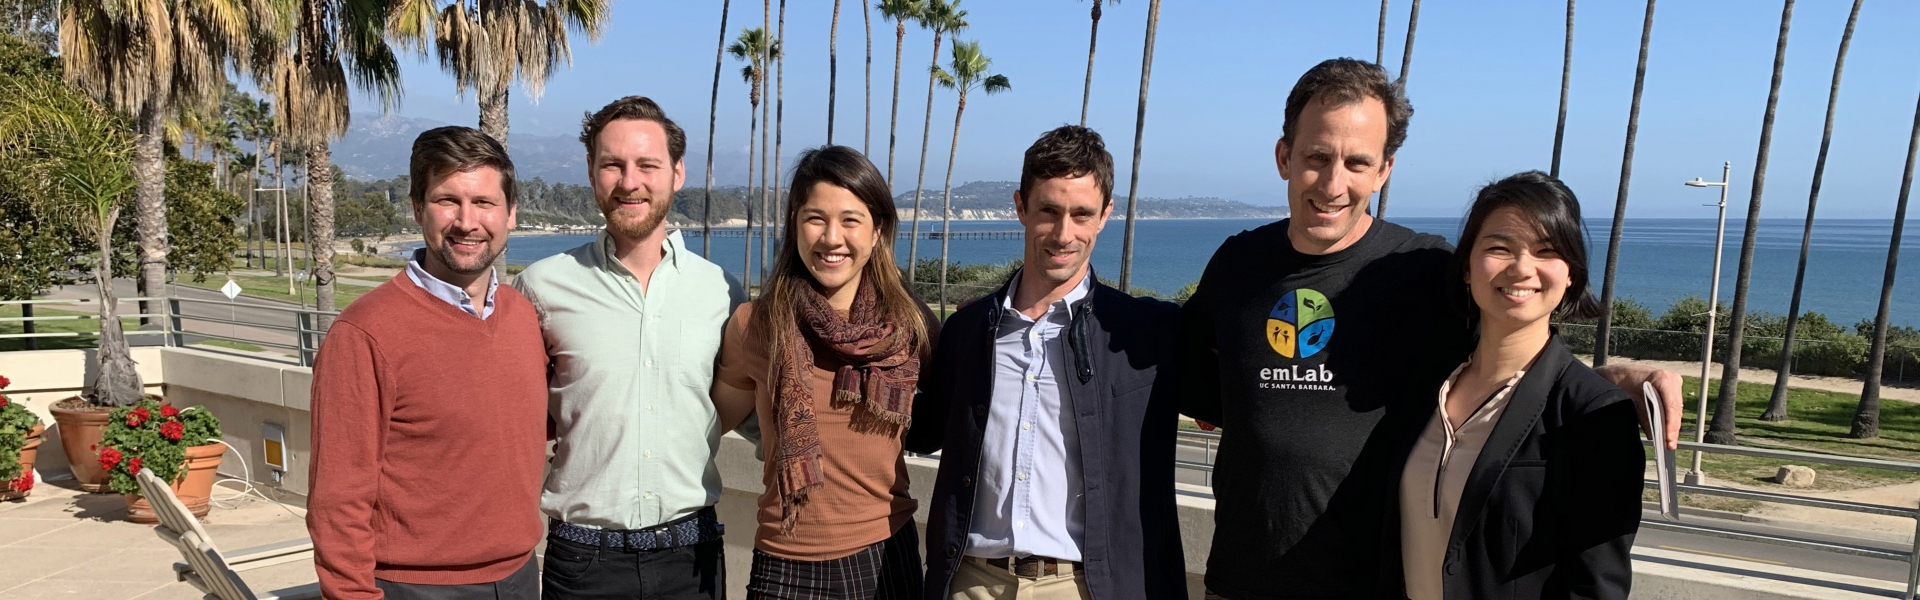 Five students stand with professor in group on terrace overlooking ocean